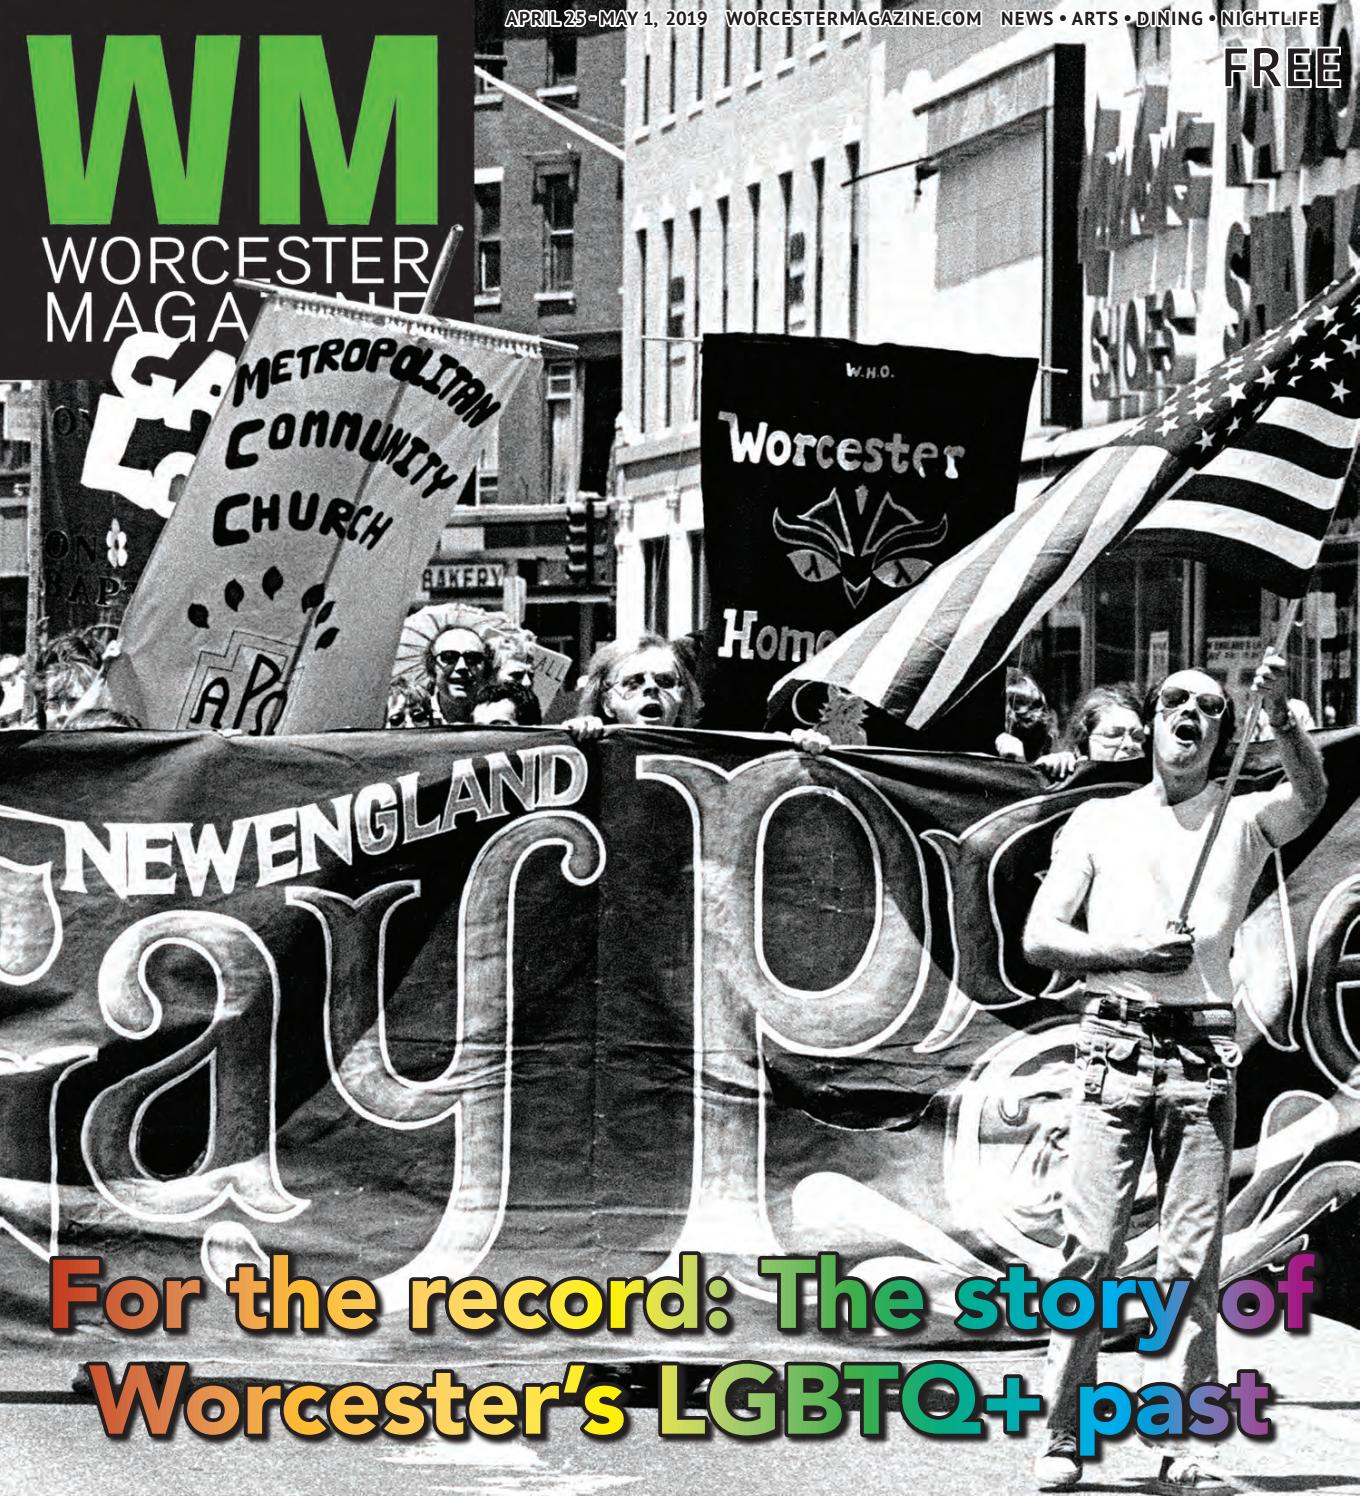 Worcester Magazine April 25 - May 1, 2019 by Worcester